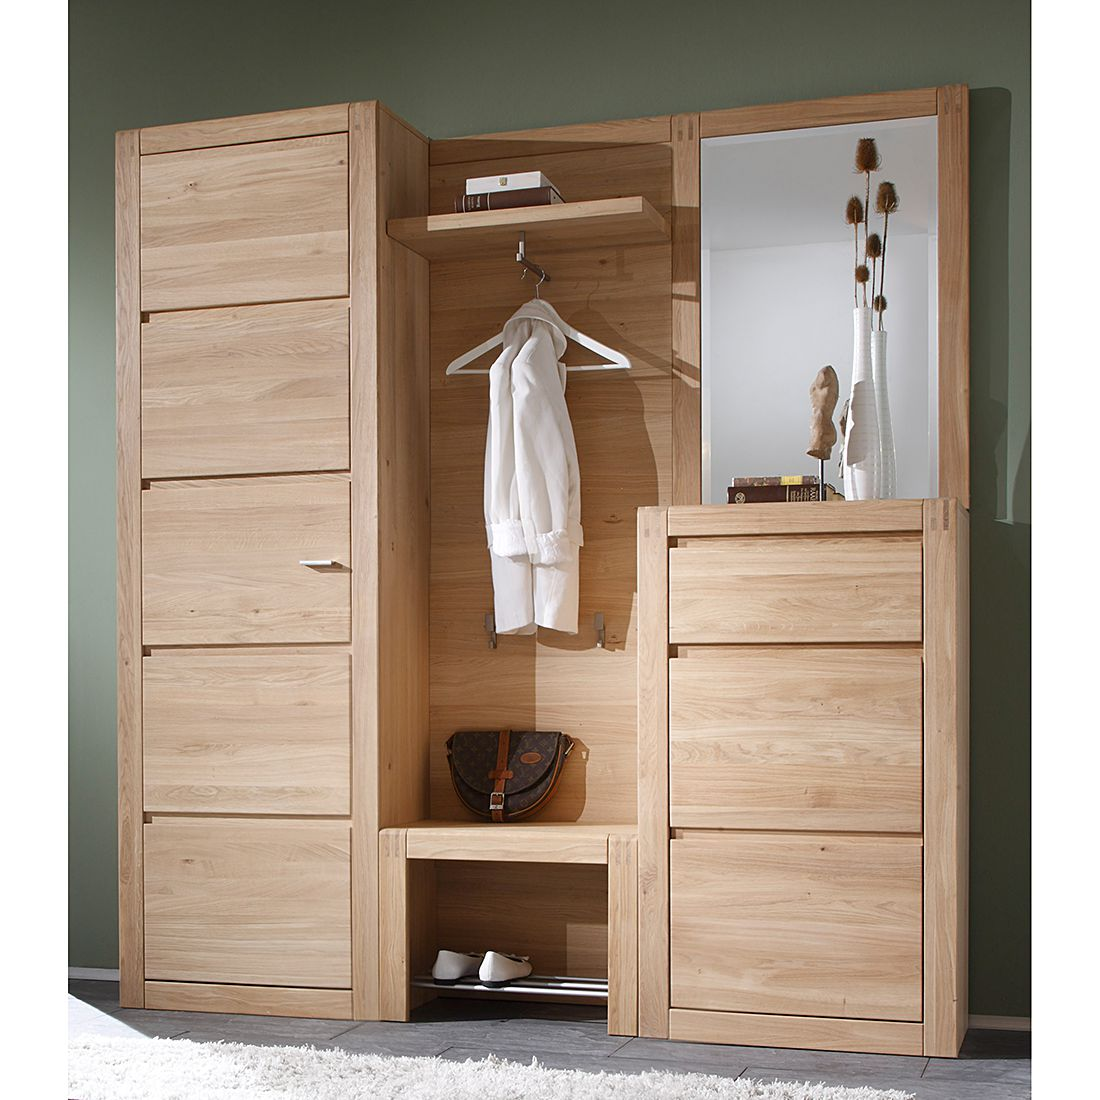 garderobe vigo 5 teilig eiche teilmassiv ge lt gewachst. Black Bedroom Furniture Sets. Home Design Ideas